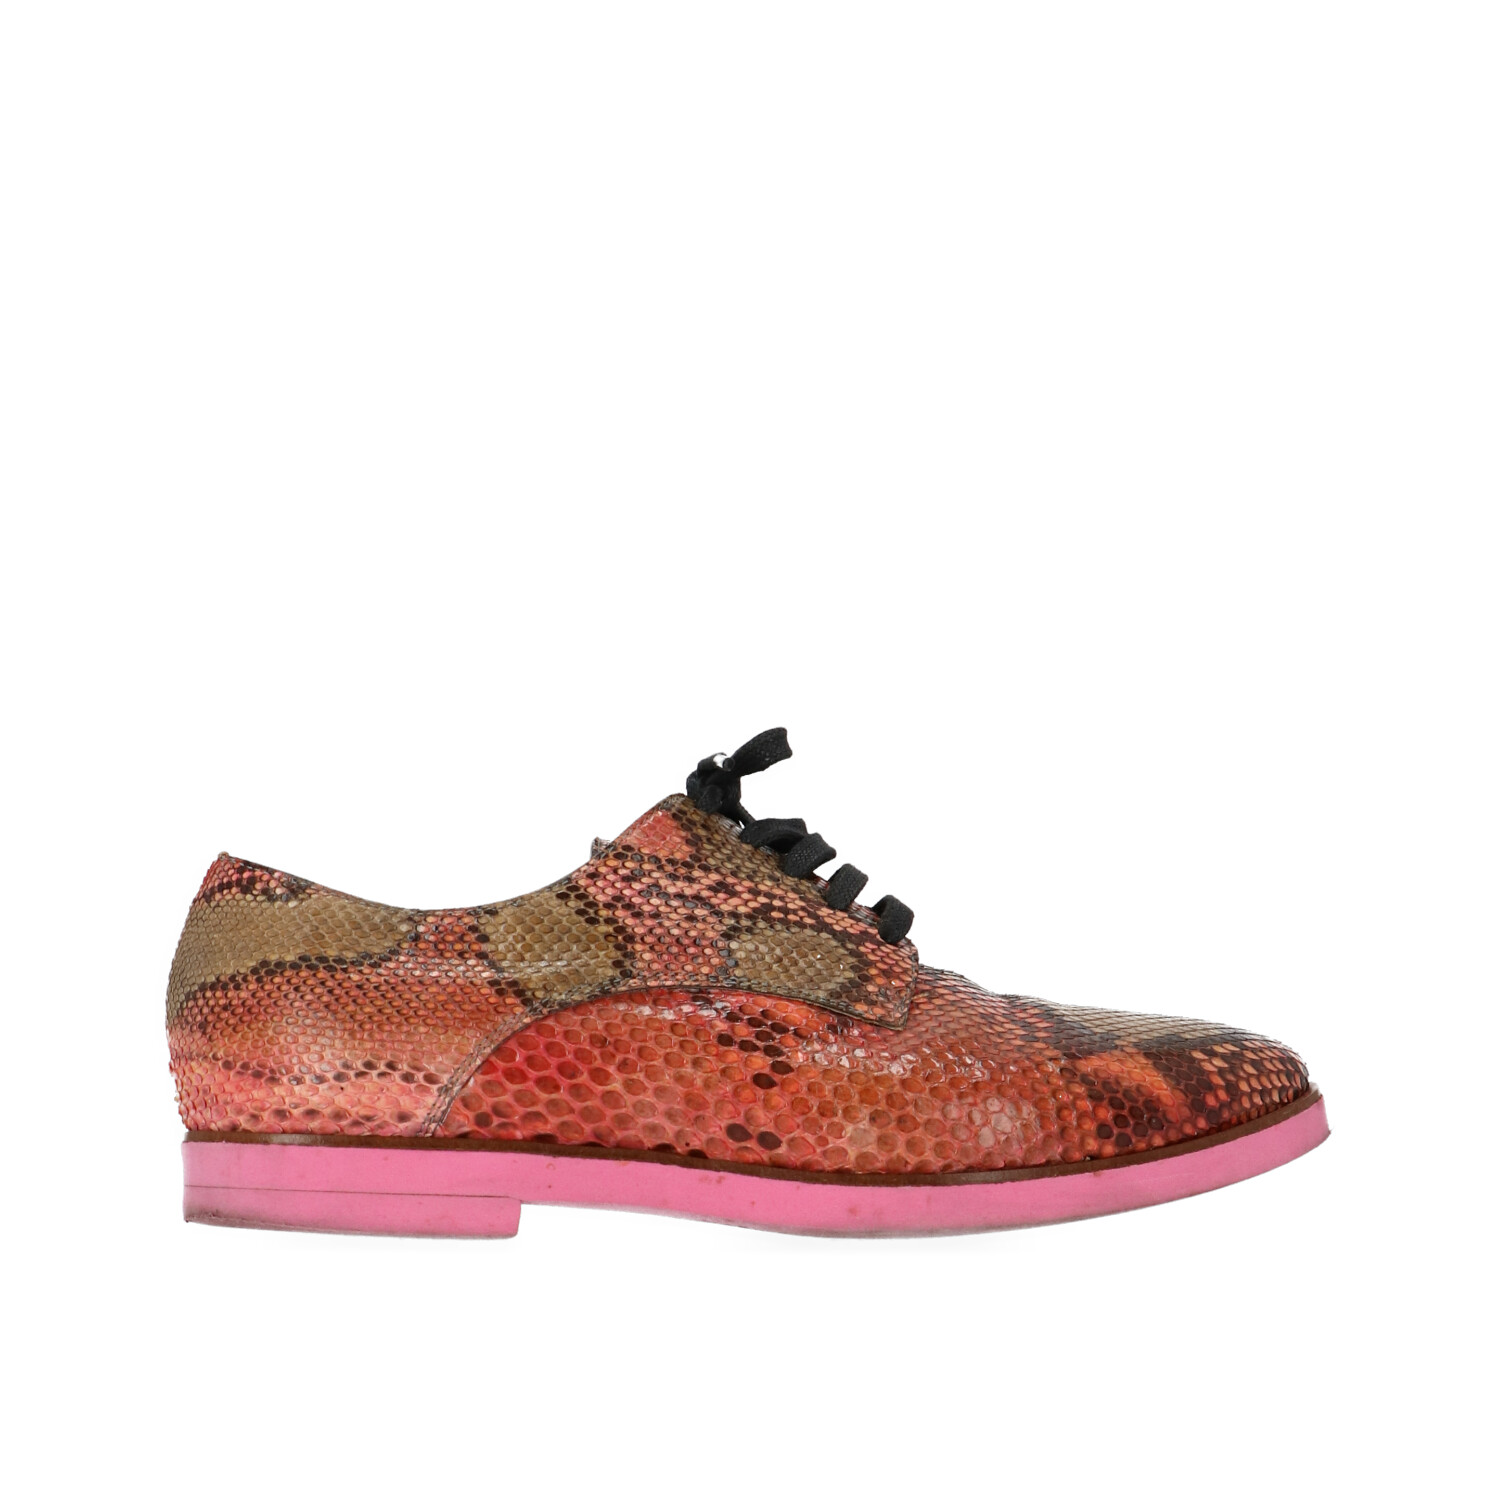 Red Snakeskin Shoes